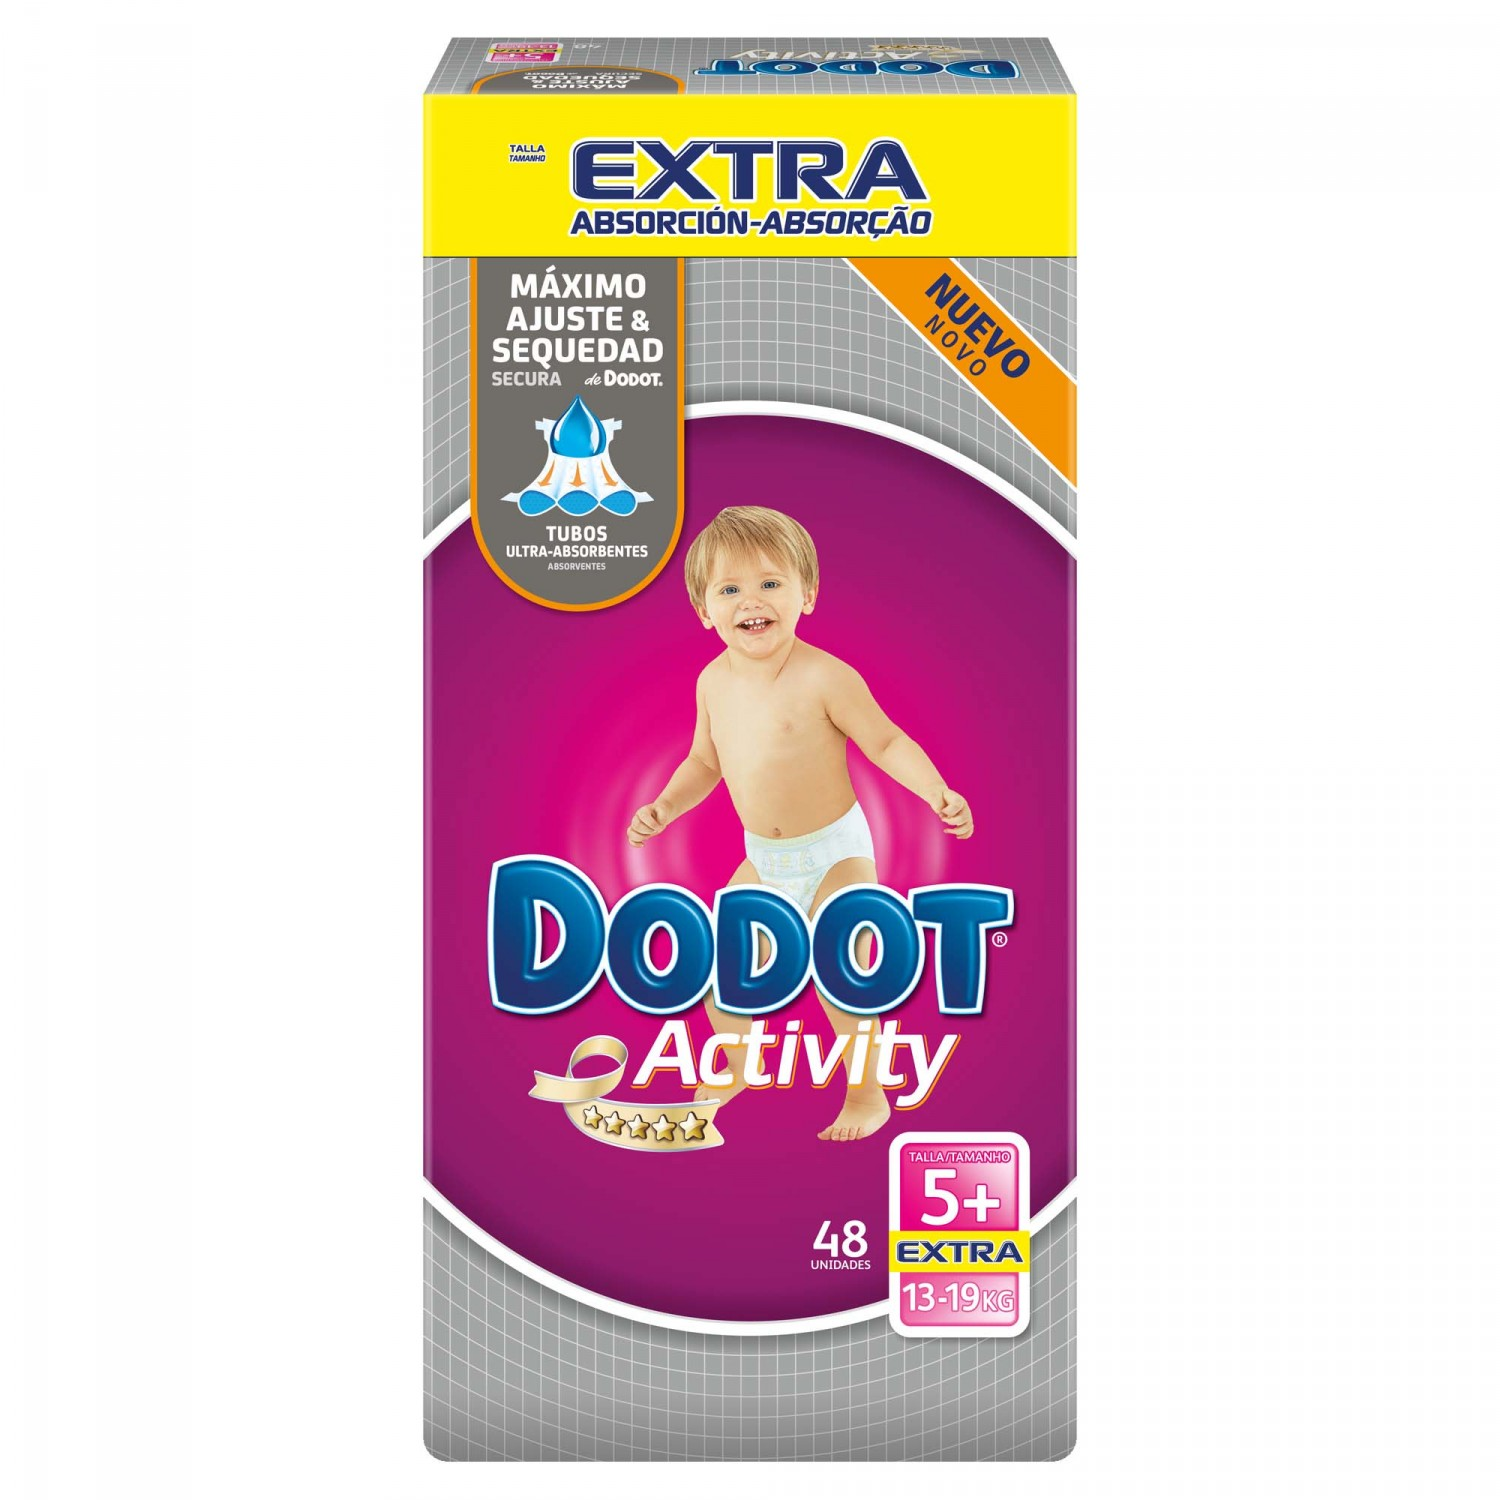 Dodot Activity pañal t 5 extra 48